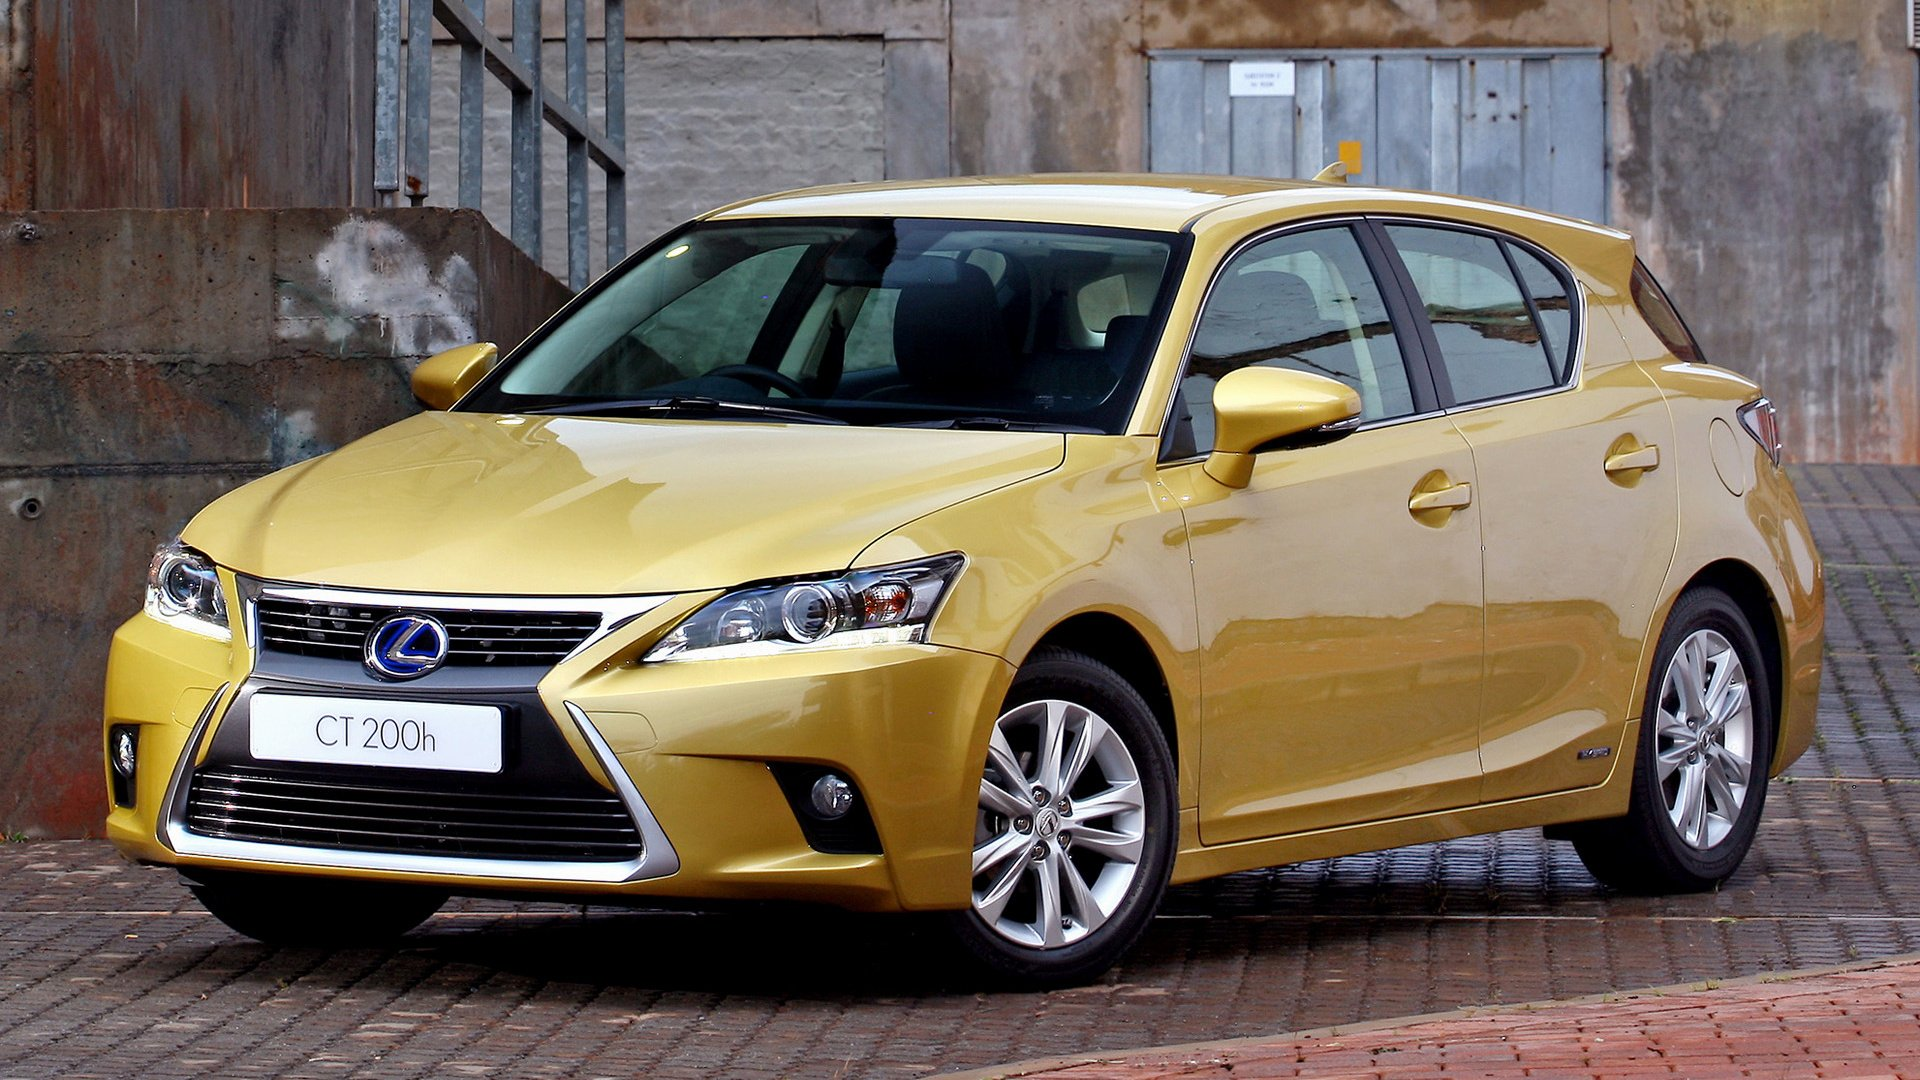 Vehicles - Lexus CT 200H  Hybrid Car Electric Car Compact Car Hatchback Yellow Car Wallpaper